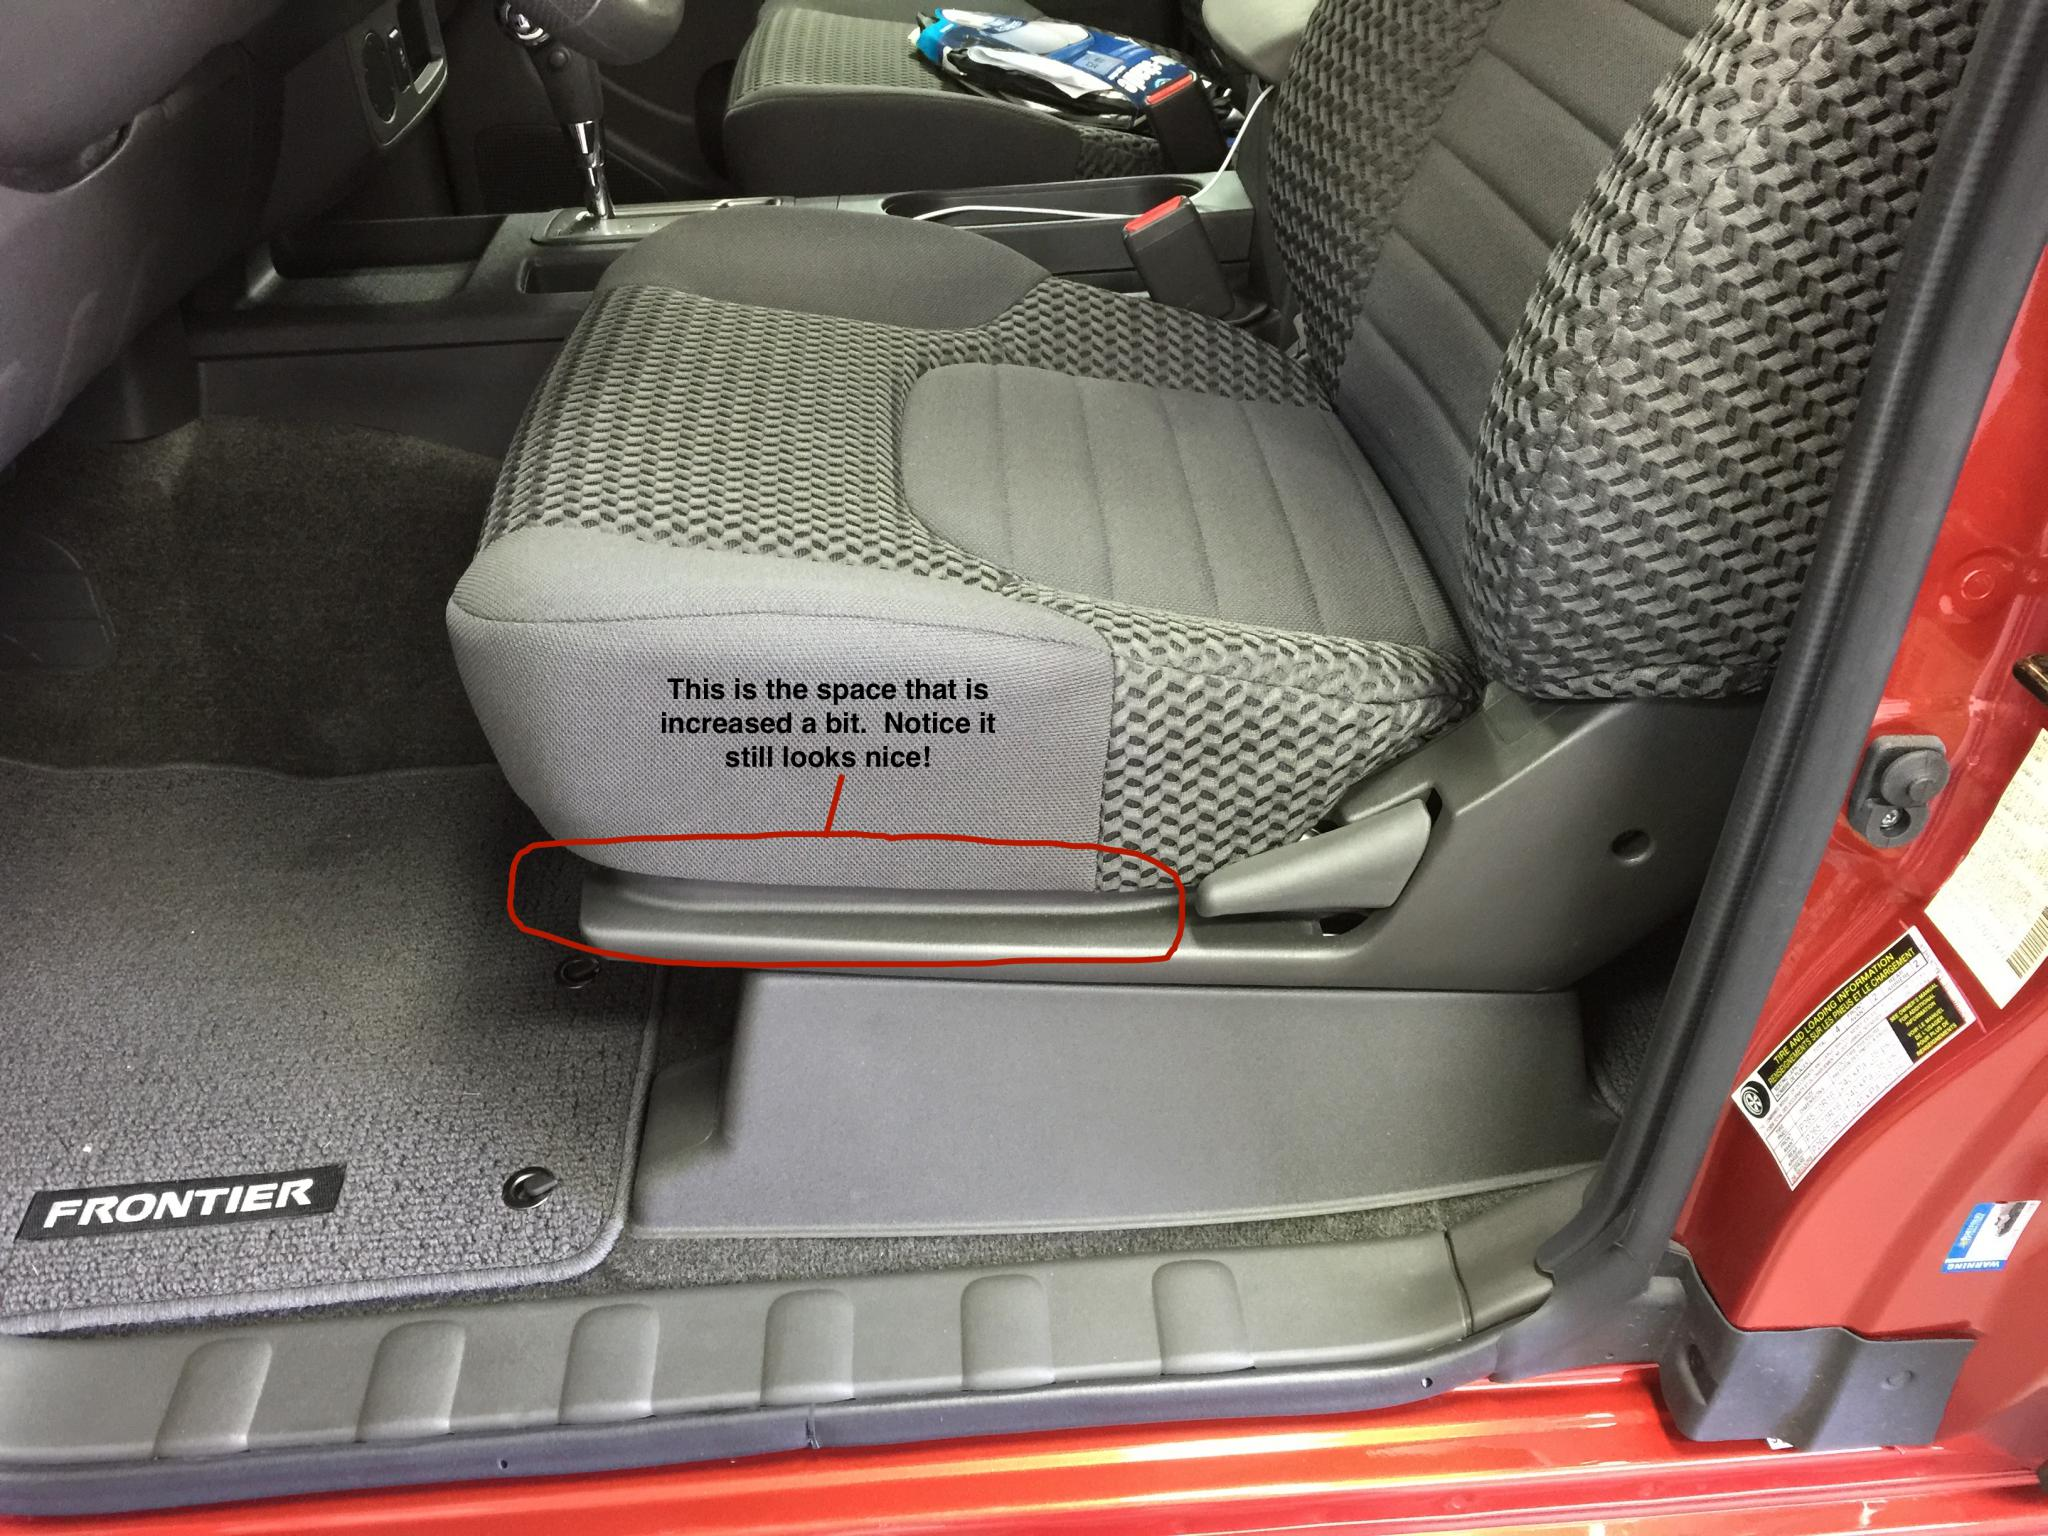 2015 Frontier Sv How To Raise The Front Seat Cushion Height